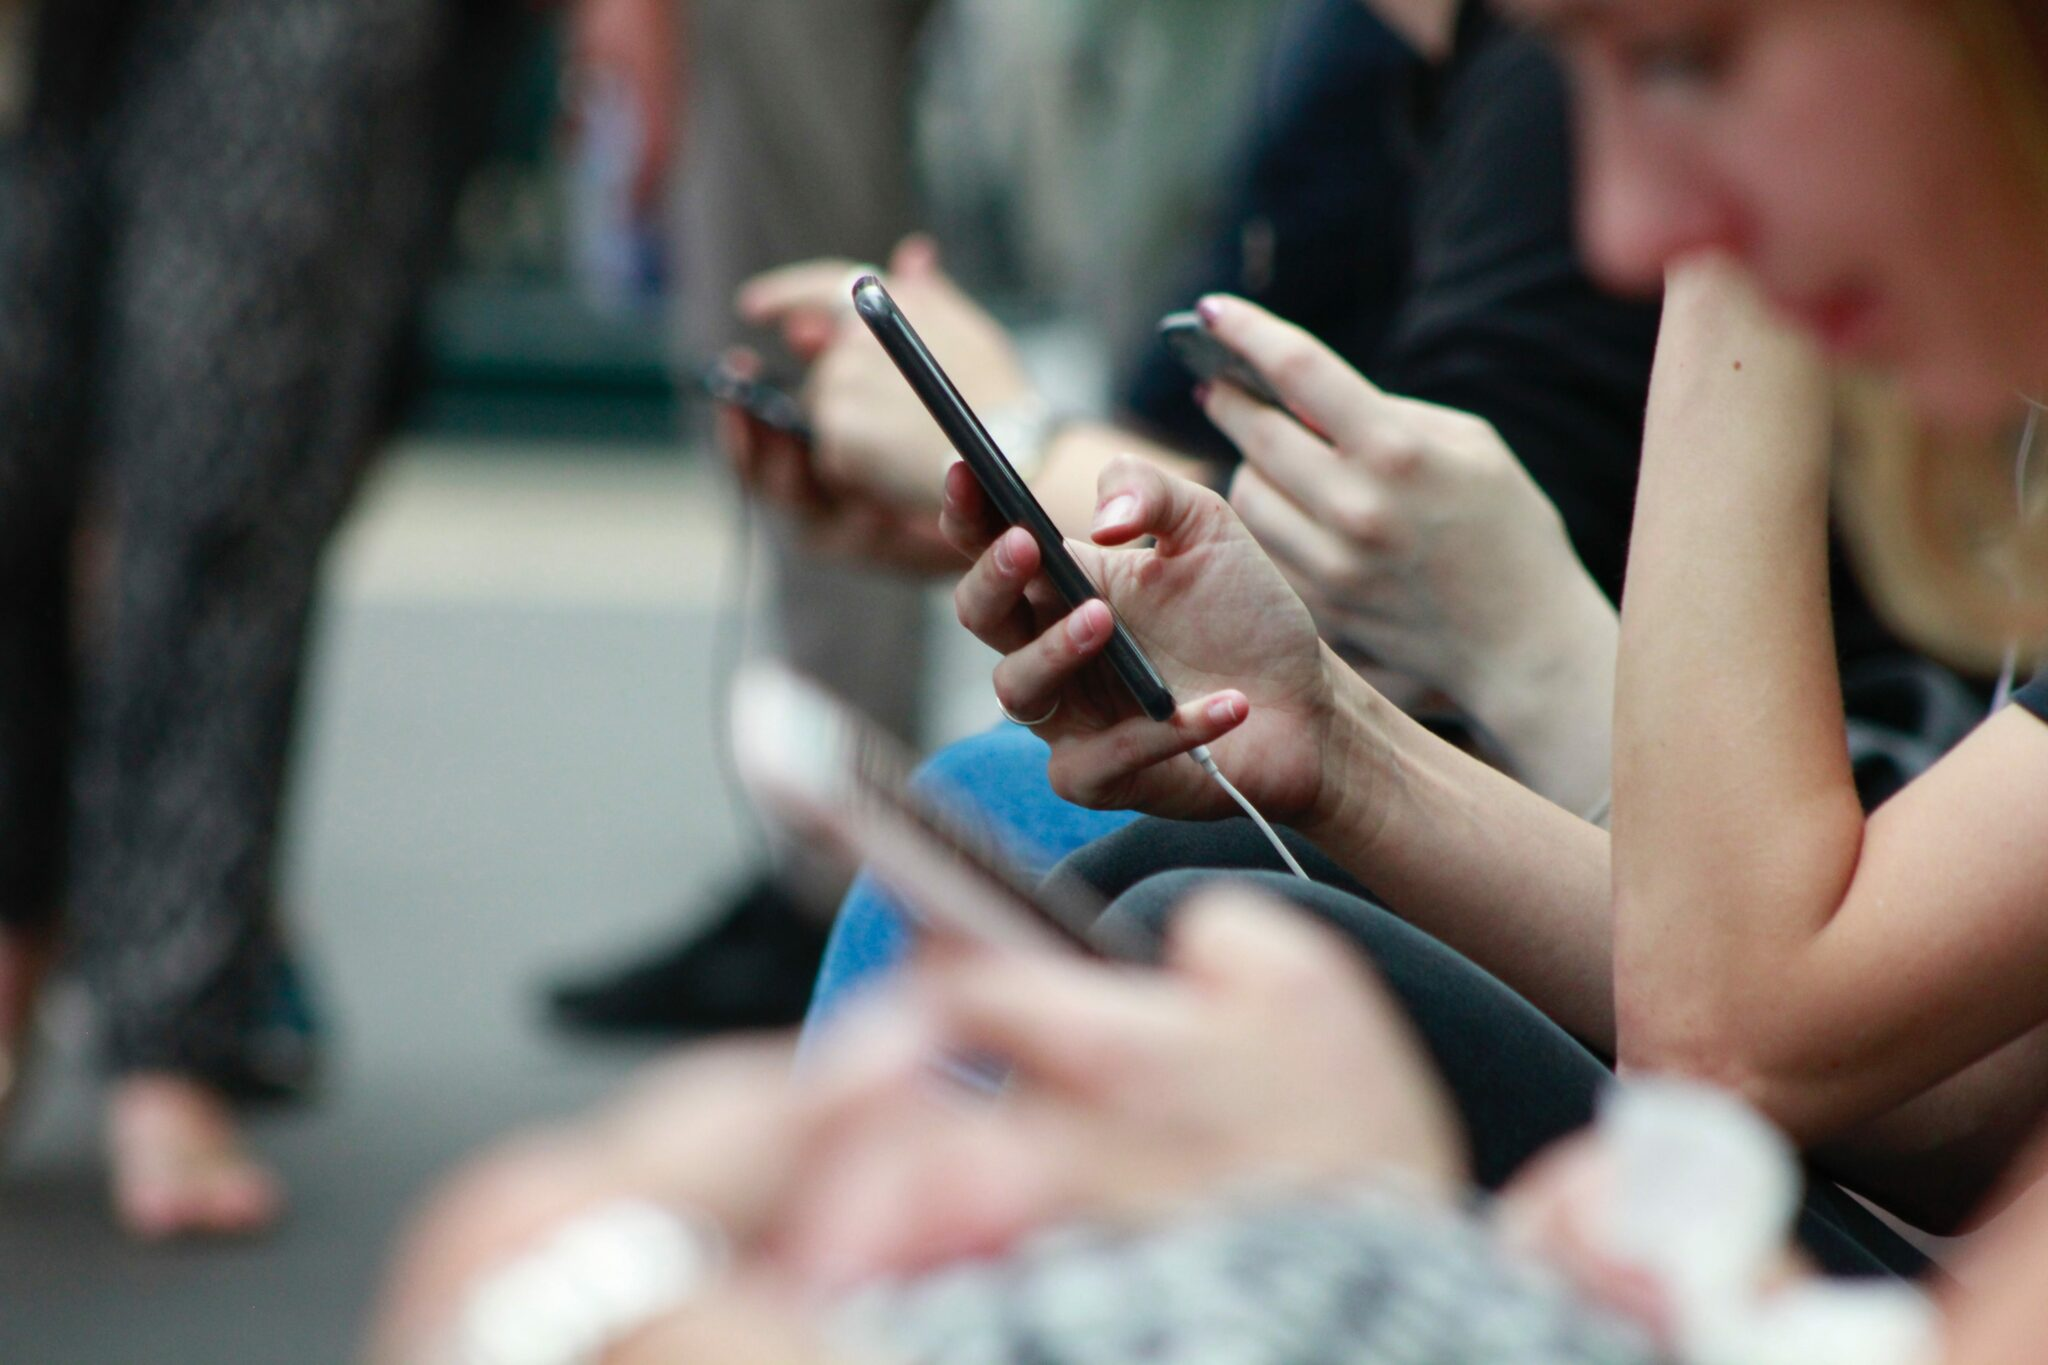 A line of people all holding Smartphones